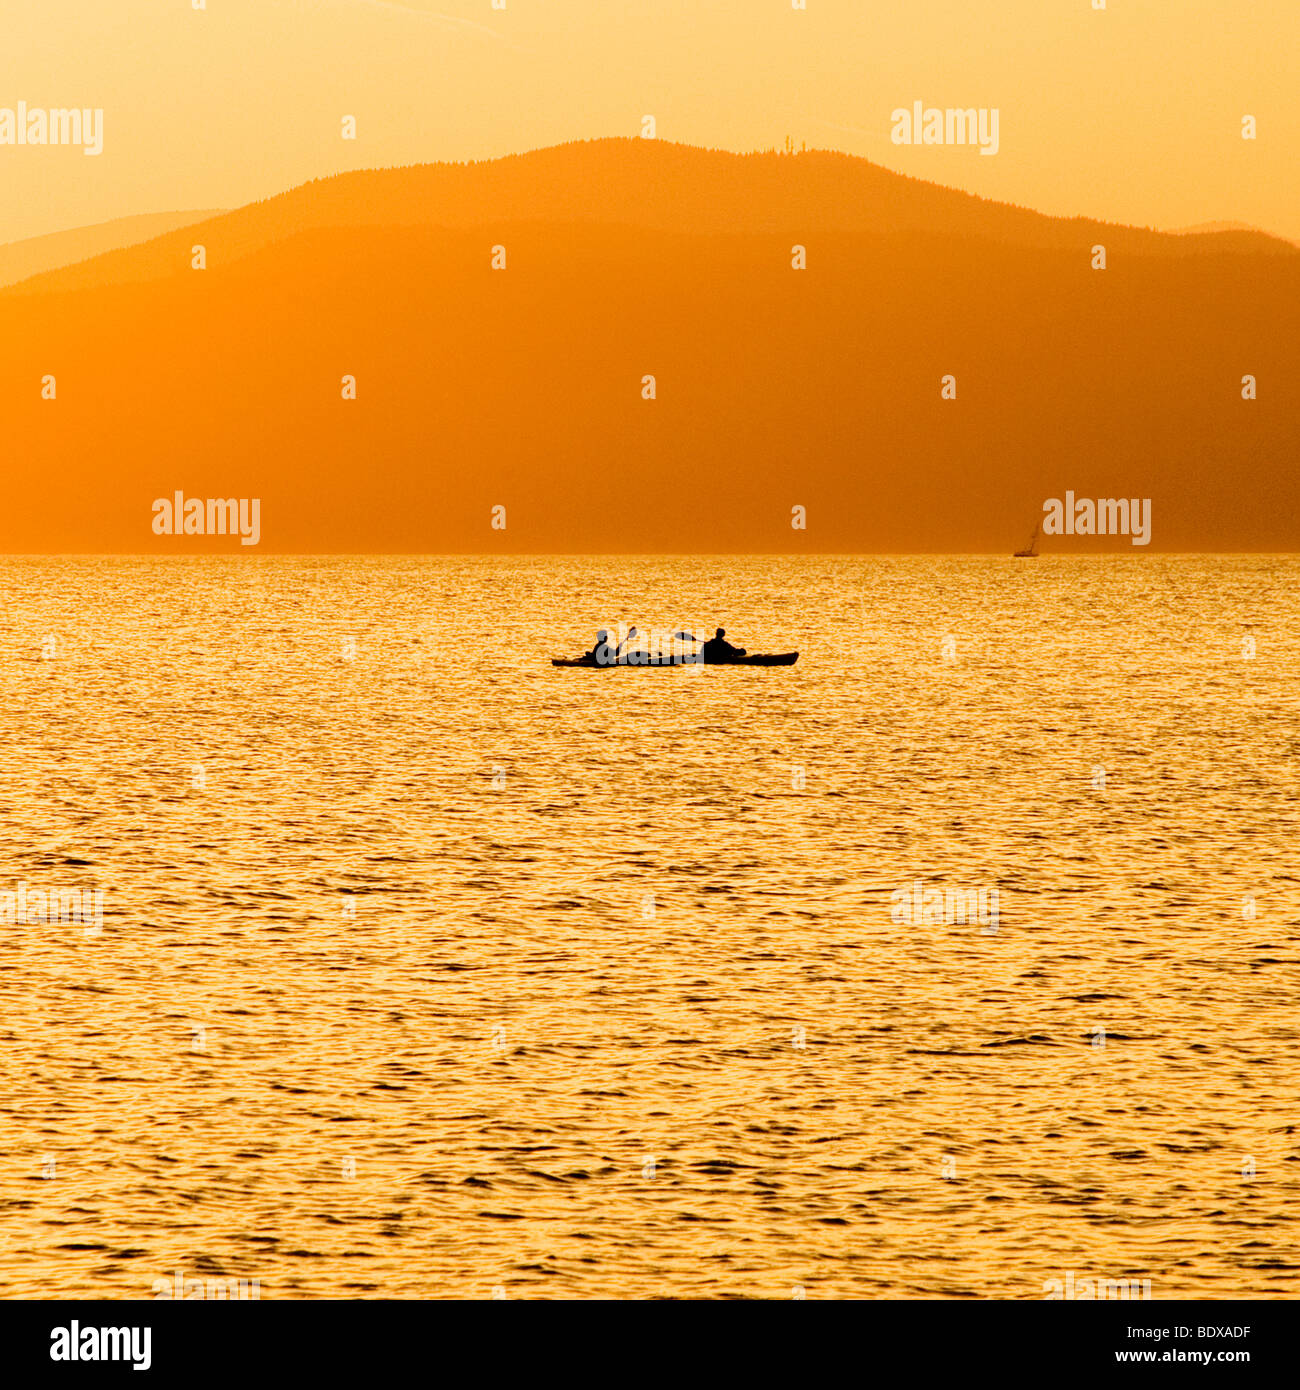 Sunset with silhouette of people kayaking on ocean, mountains in background, Jericho Beach, Vancouver - Stock Image